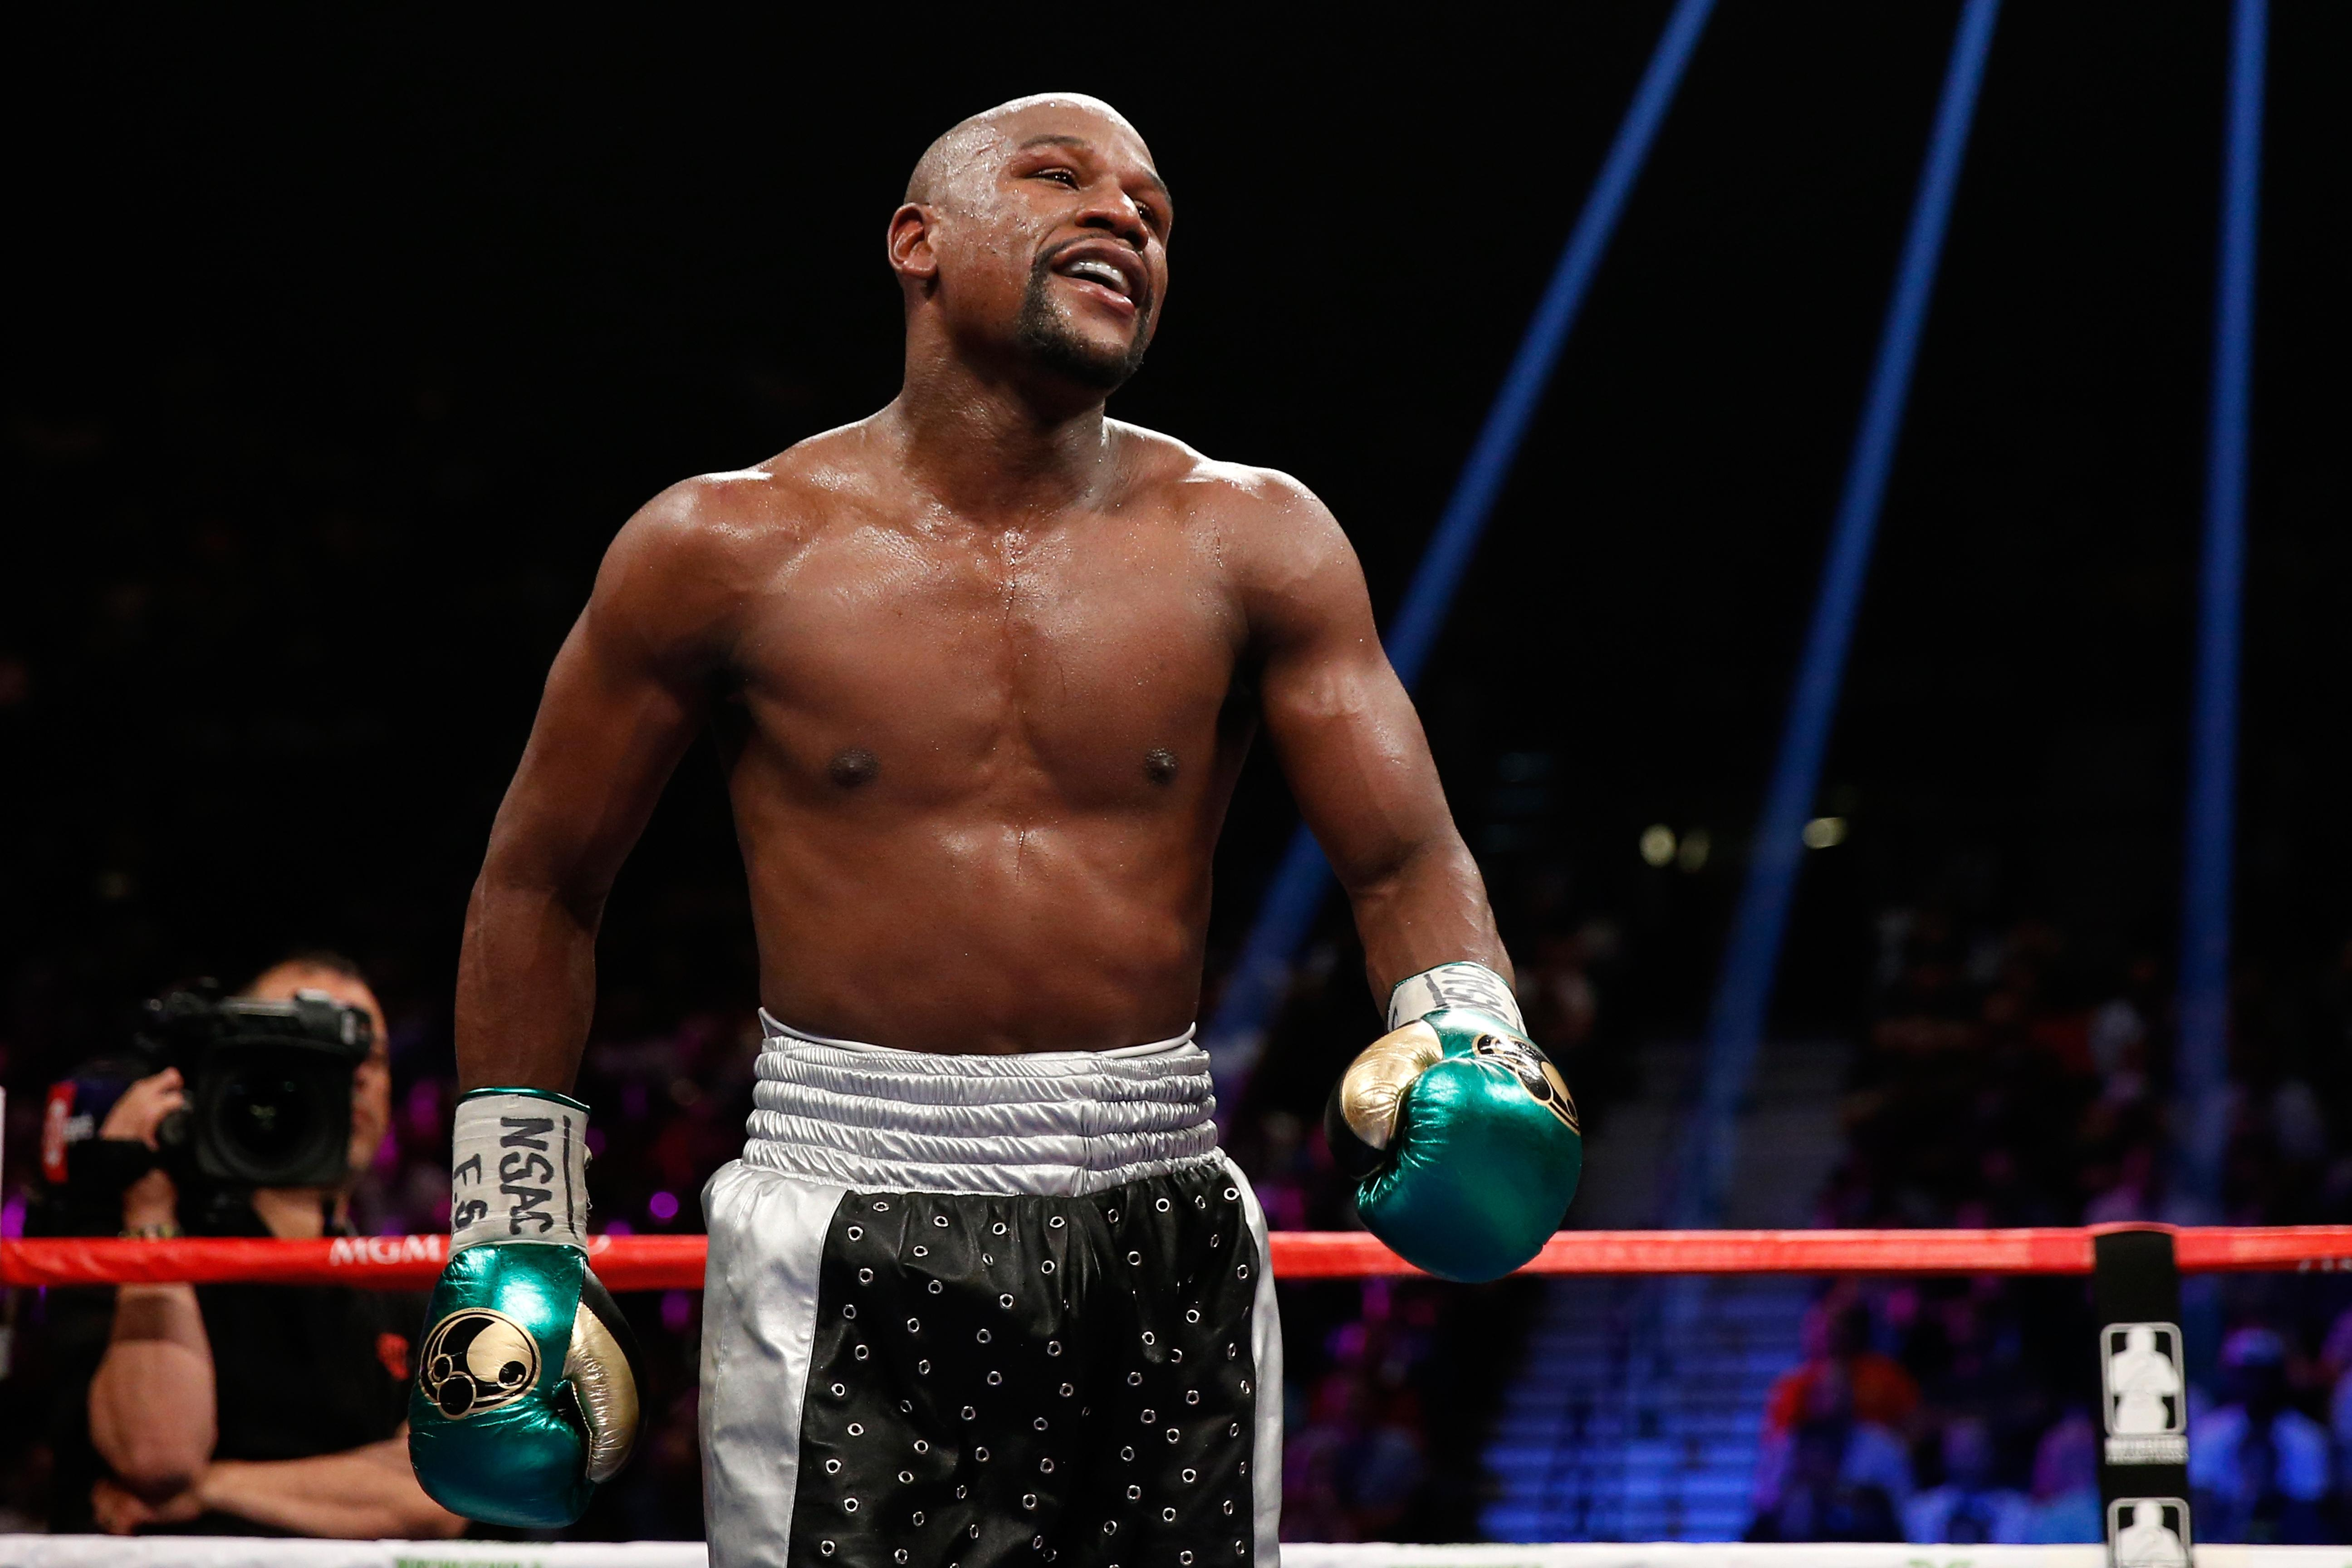 Floyd Mayweather has confirmed he is in training to compete in his first UFC fight